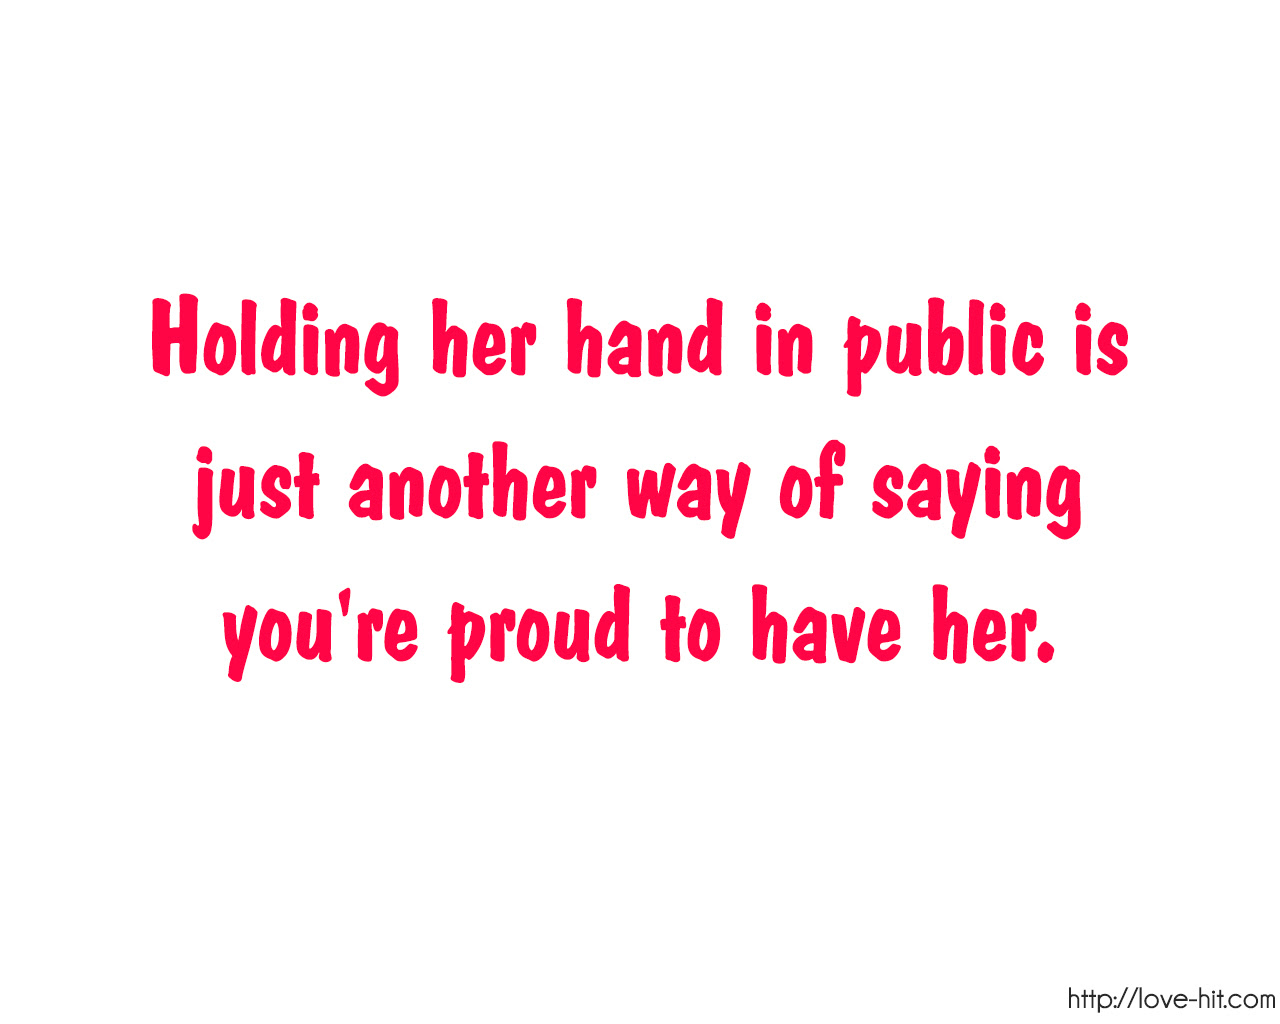 35 Cute Quotes For You ➤ Funny Love Quotes To Say To Her